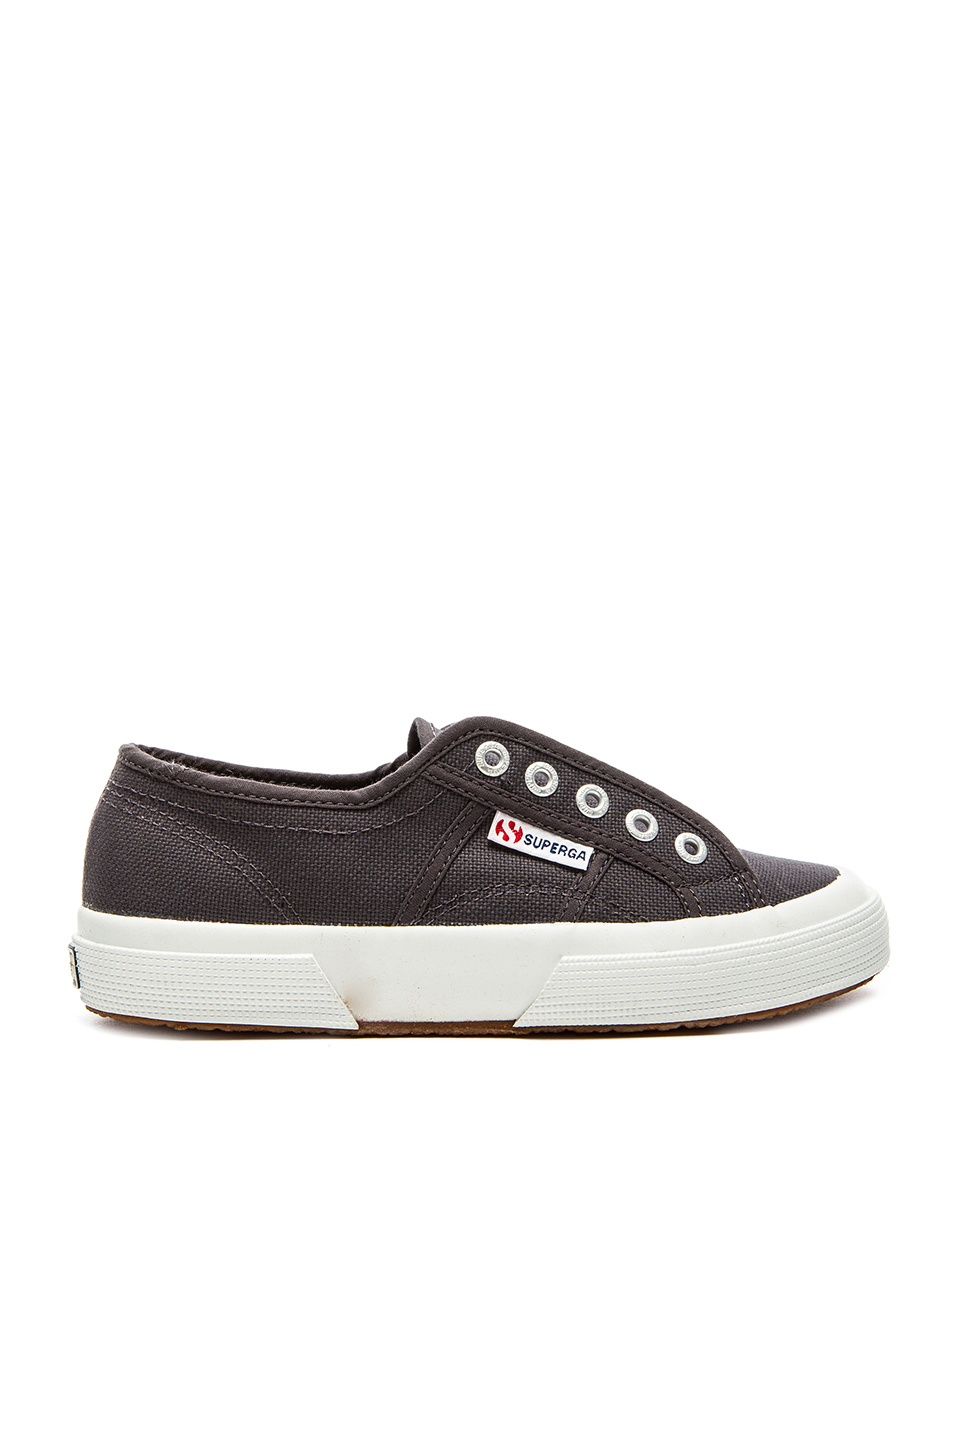 Superga Cotu Slip On Sneaker @ www.revolveclothing.com